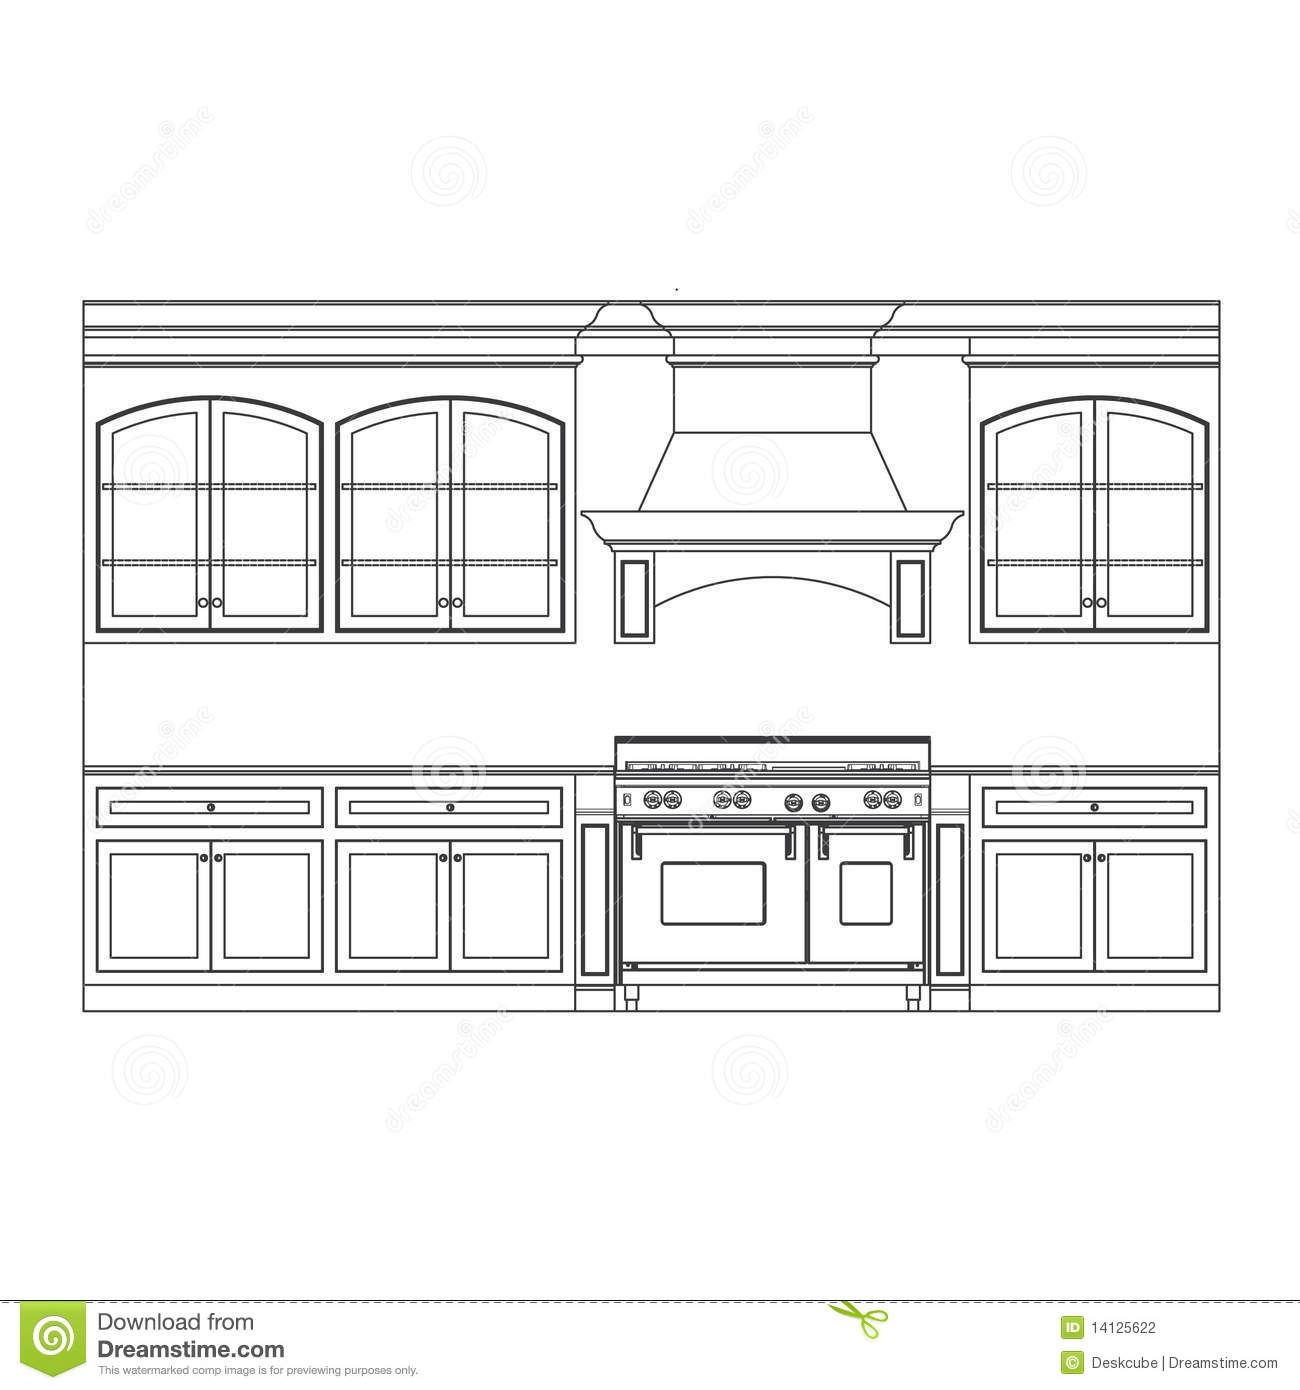 Kitchen Cabinets Stock Vector. Illustration Of Kitchen